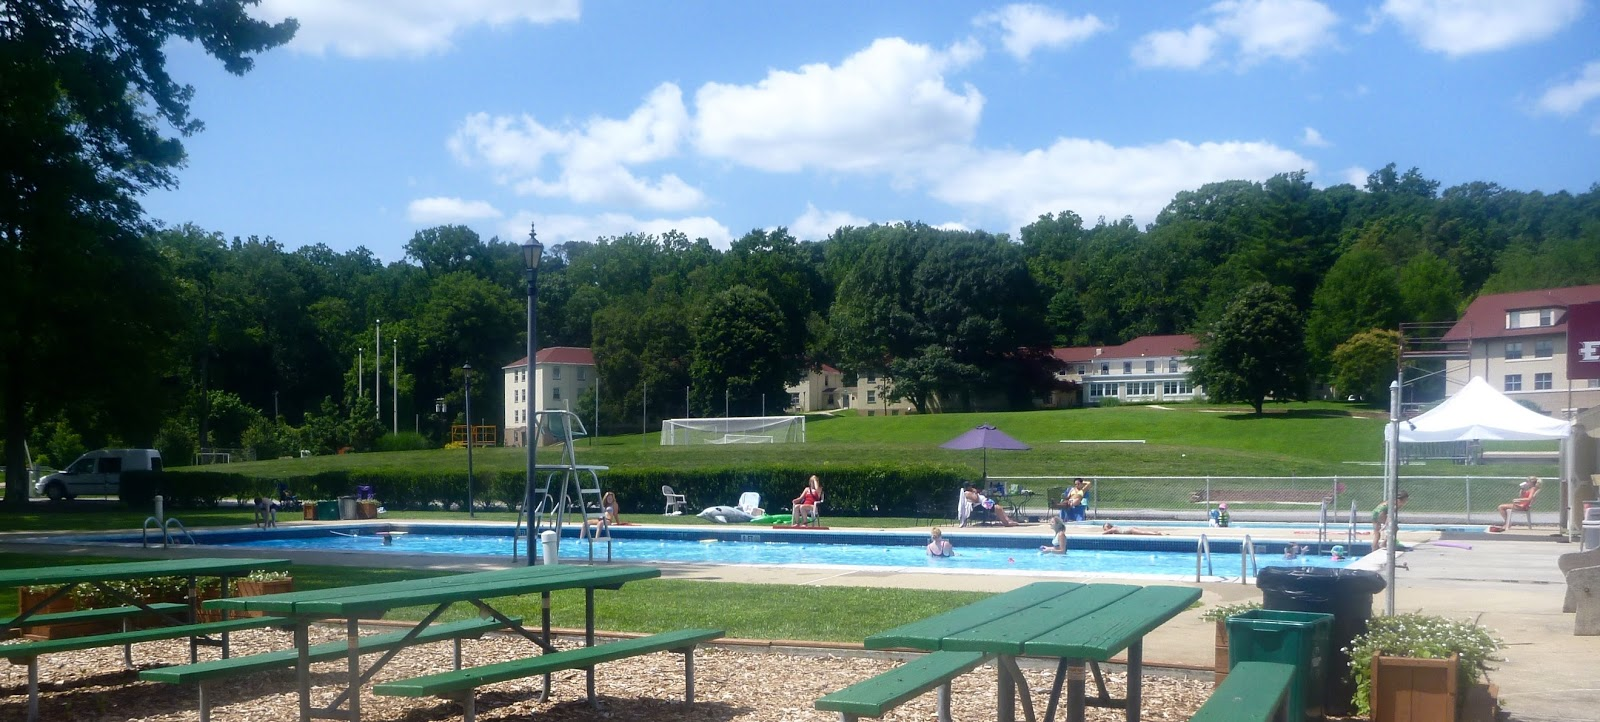 small outdoor swimming pool on Eastern University campus